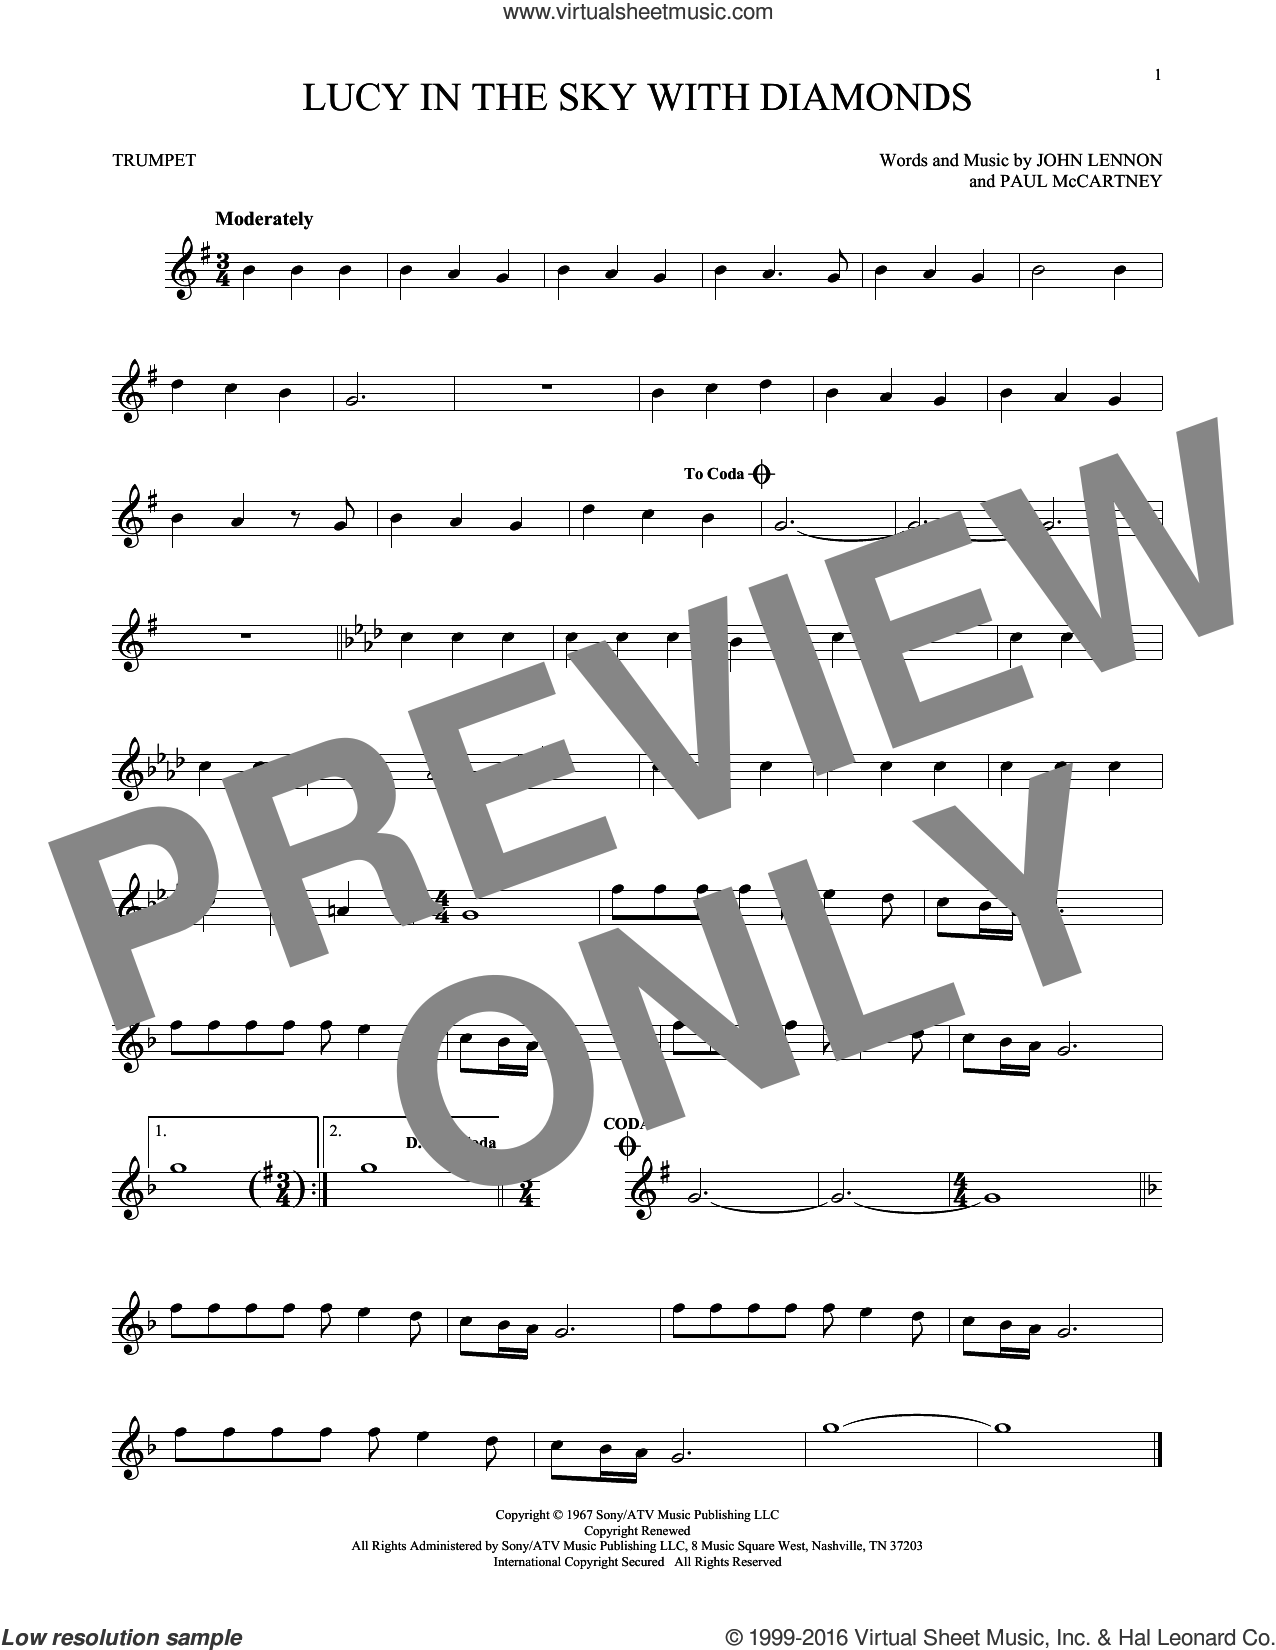 Lucy In The Sky With Diamonds sheet music for trumpet solo by The Beatles, Elton John, John Lennon and Paul McCartney, intermediate skill level